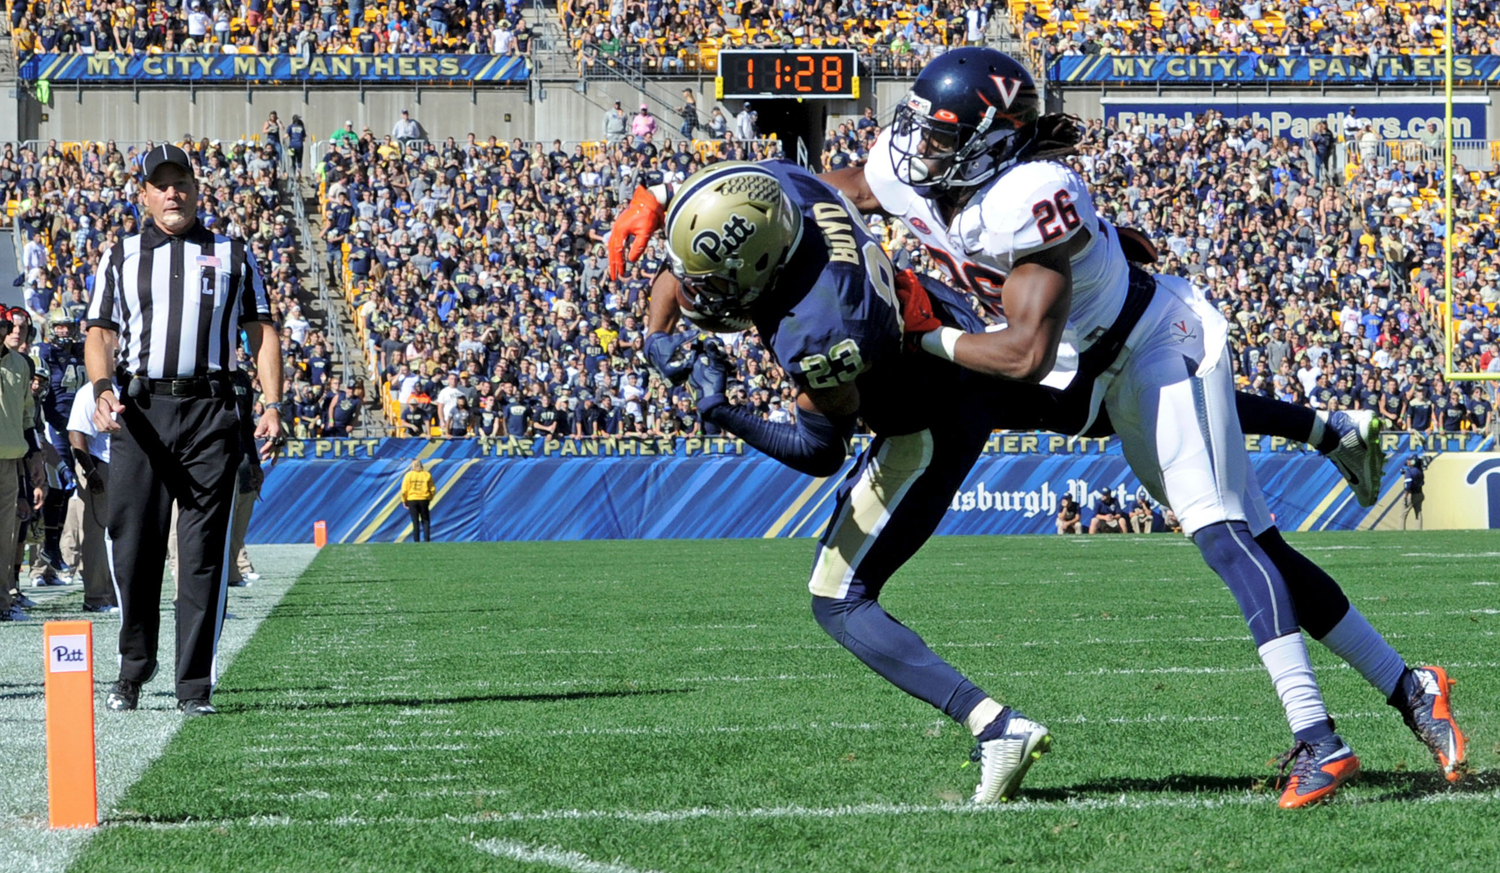 Pitt's then-wide receiver Tyler Boyd pulls in a pass for an 8-yard touchdown as he's defended by Virginia's Maurice Canady in the third quarter on Oct. 10, 2015, at Heinz Field. Pitt won, 26-19.